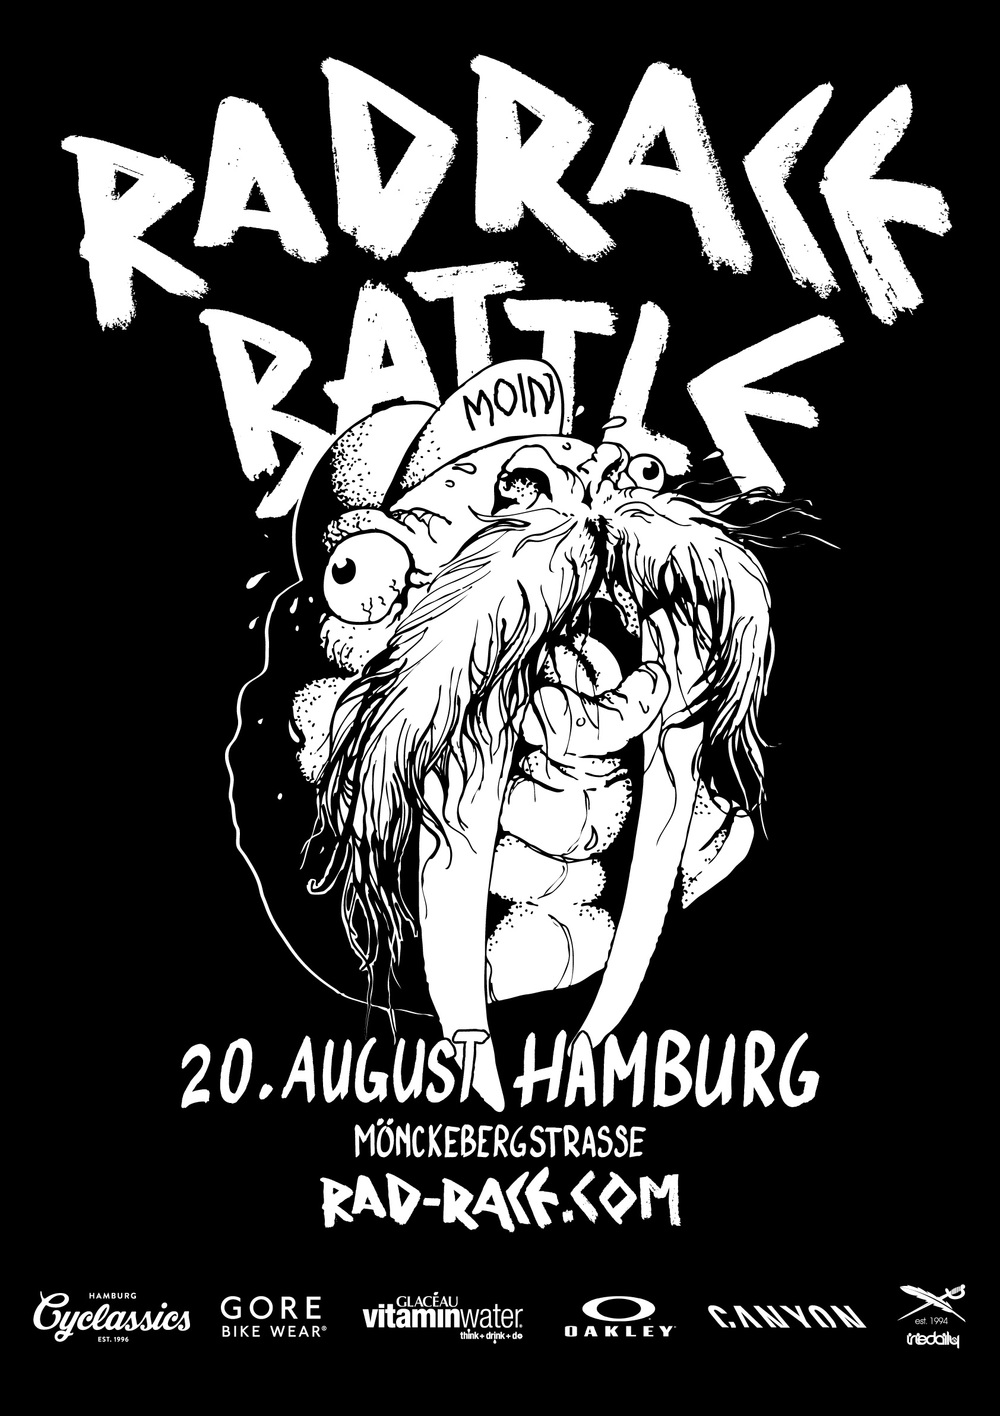 The official poster for the RAD RACE BATTLE Hamburg, made by Menso von Ehrenstein.